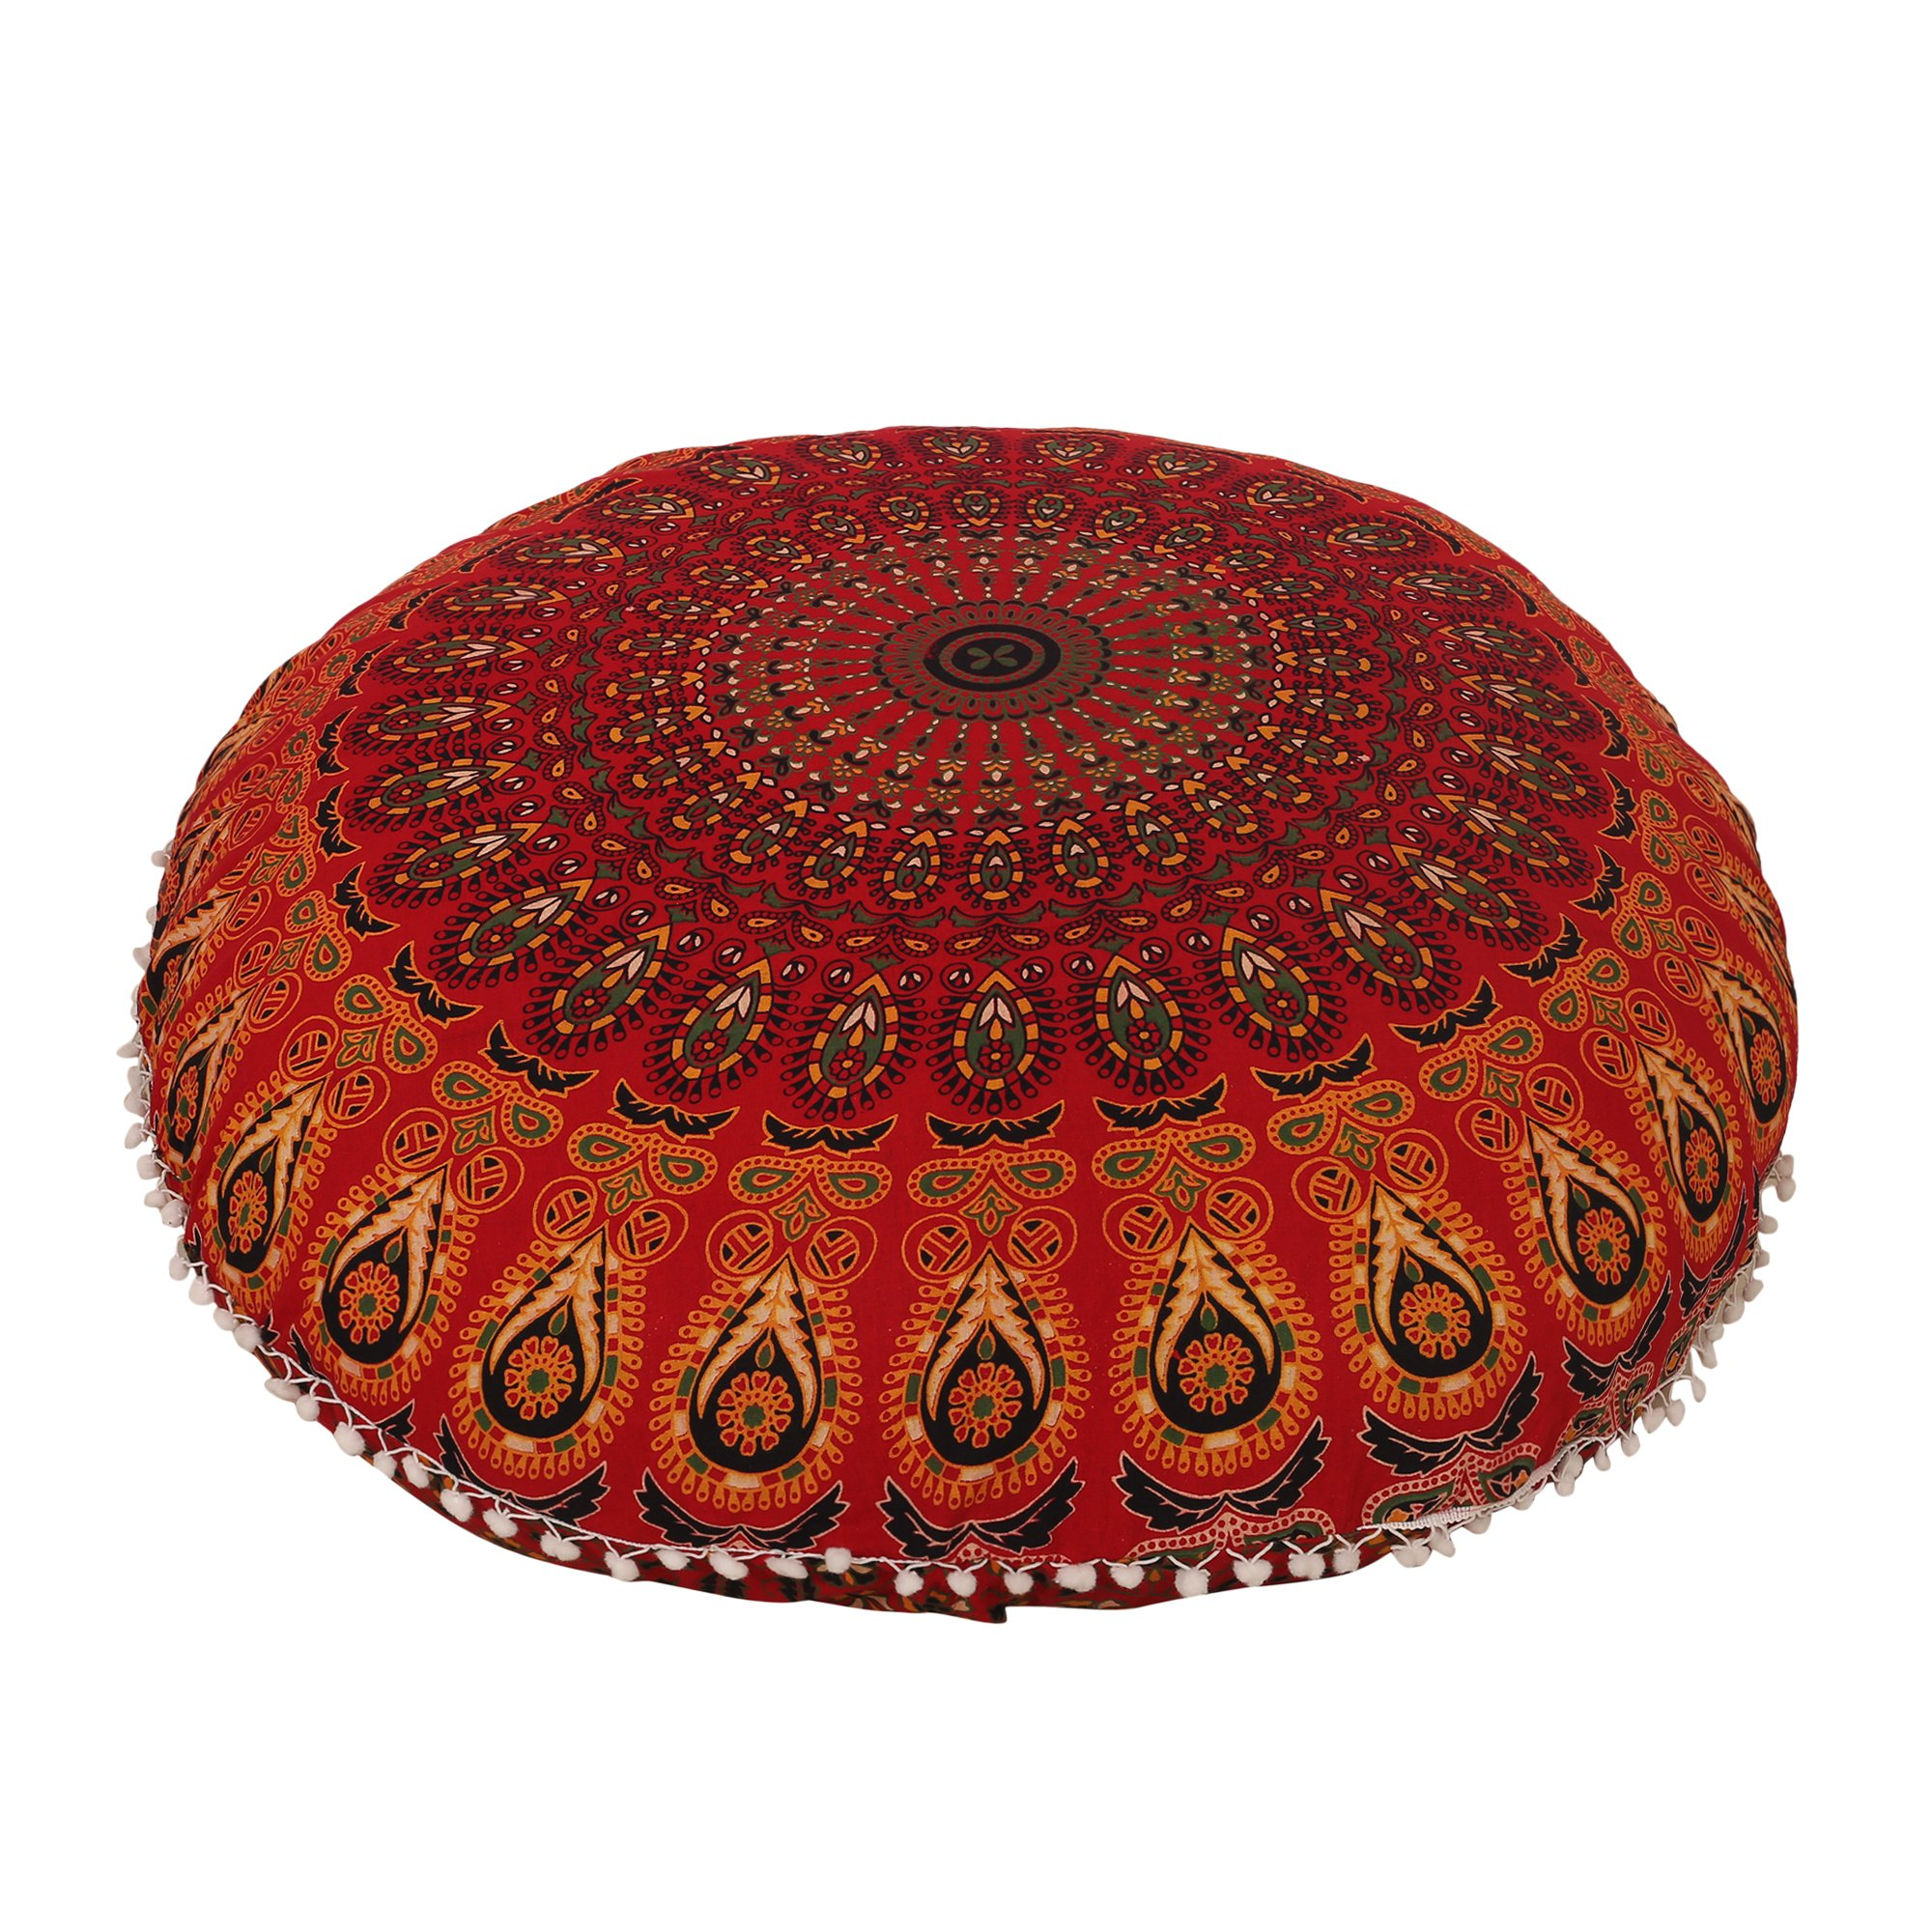 32'' Cotton Round Floor Pillow Cover Red Indian Mandala Pillow Cover Cushion Cover Ottoman Pouf Cover